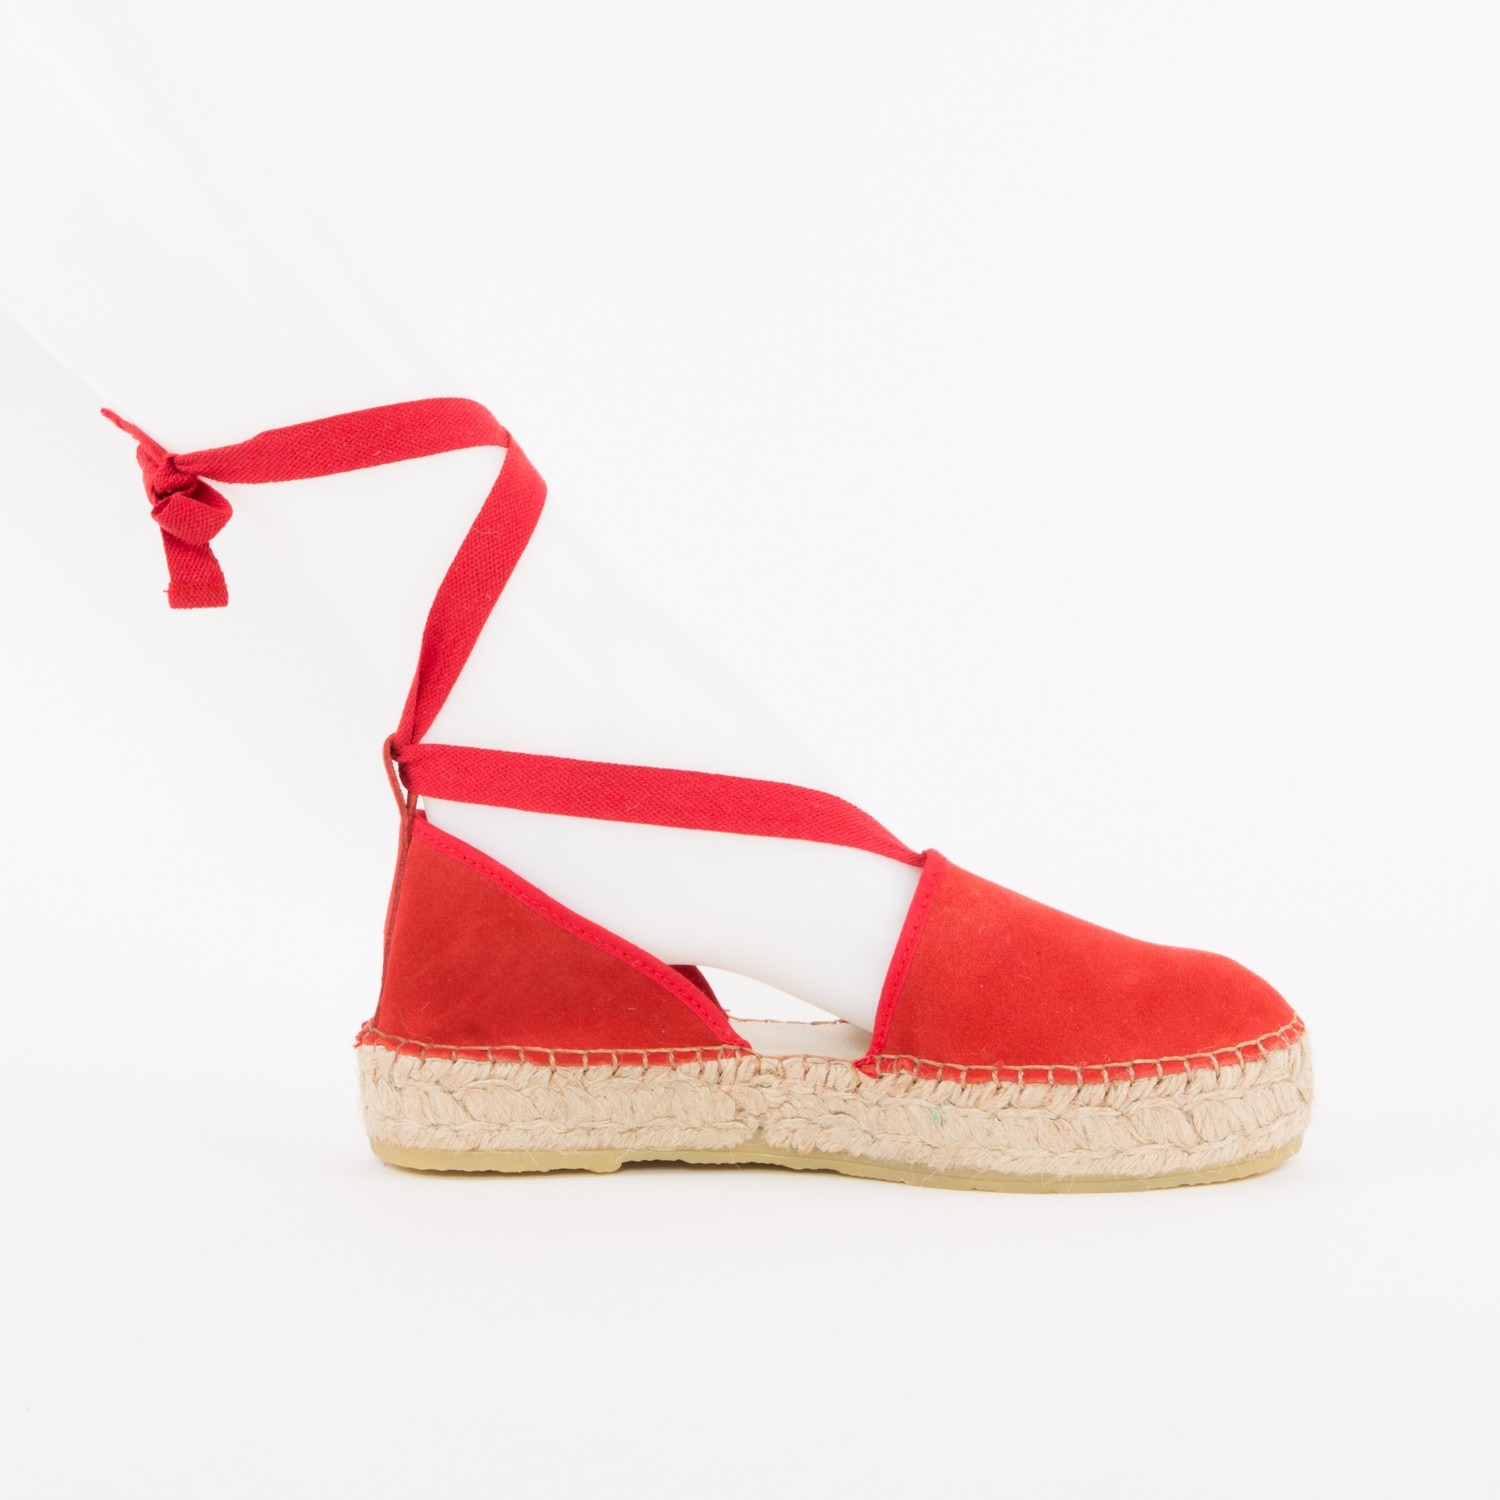 Espadrilles compensees fabrication francaise